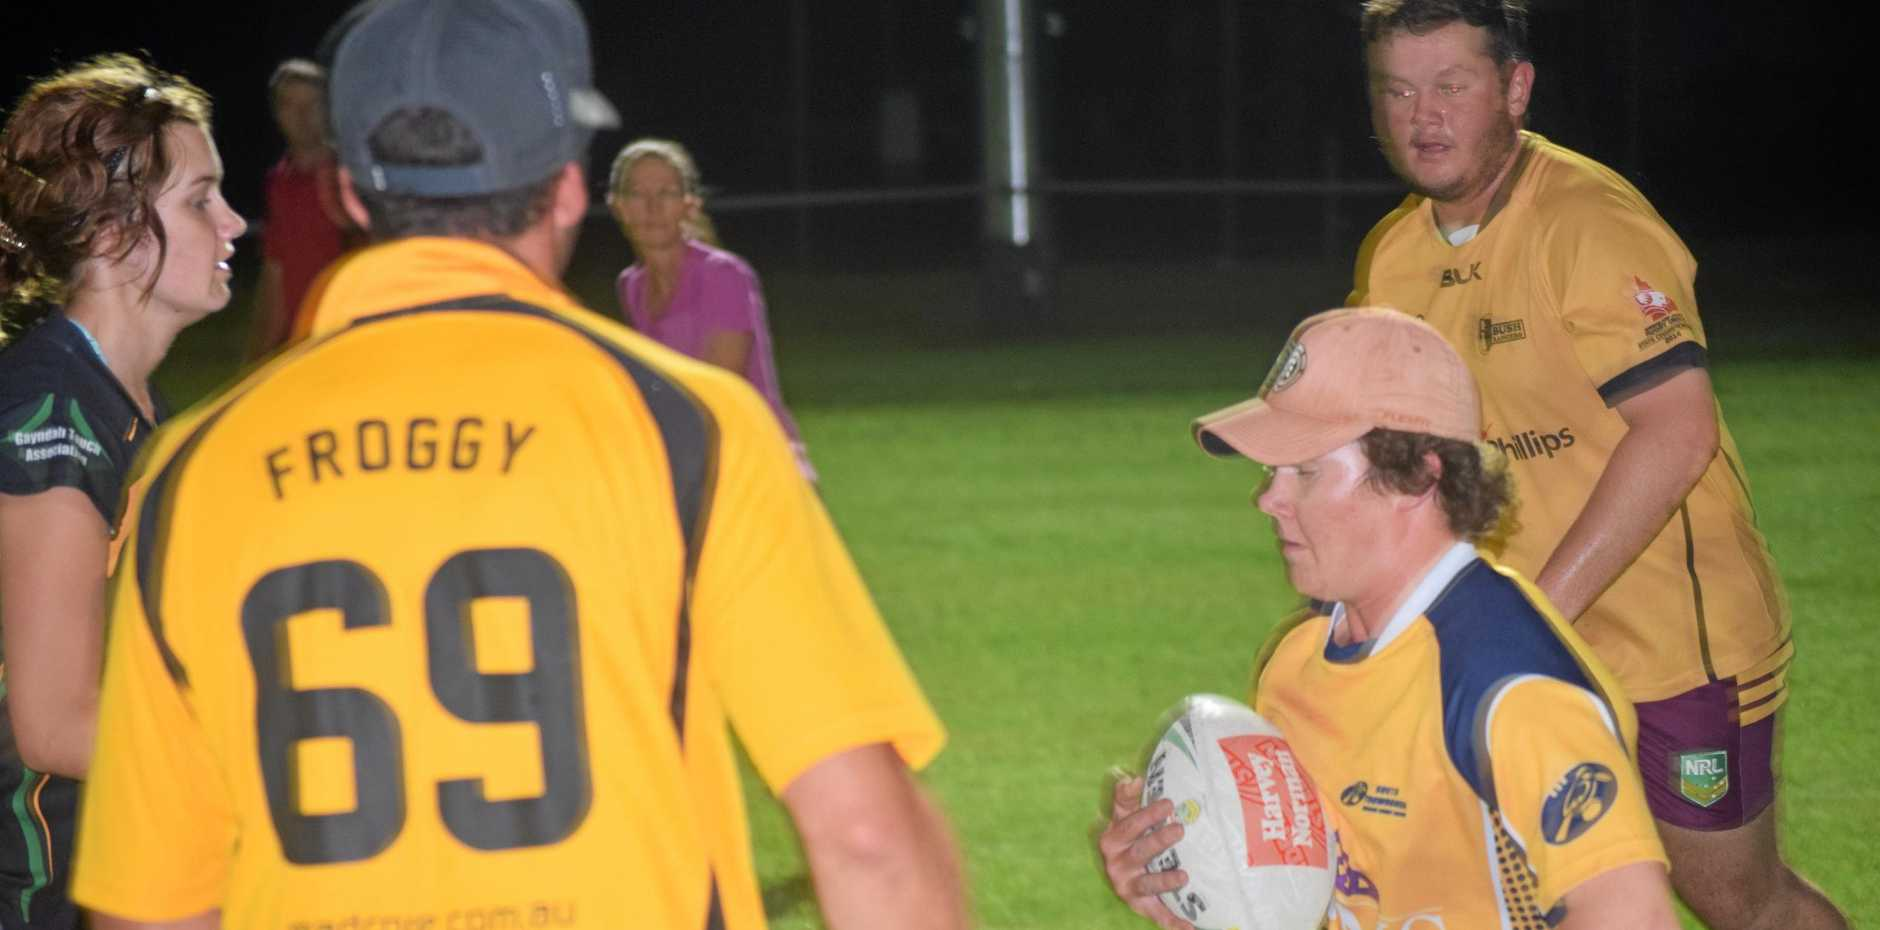 DODGING: Blake Crofts tries to get away from a defender in Monday night's grand final showdown in Mundubbera.